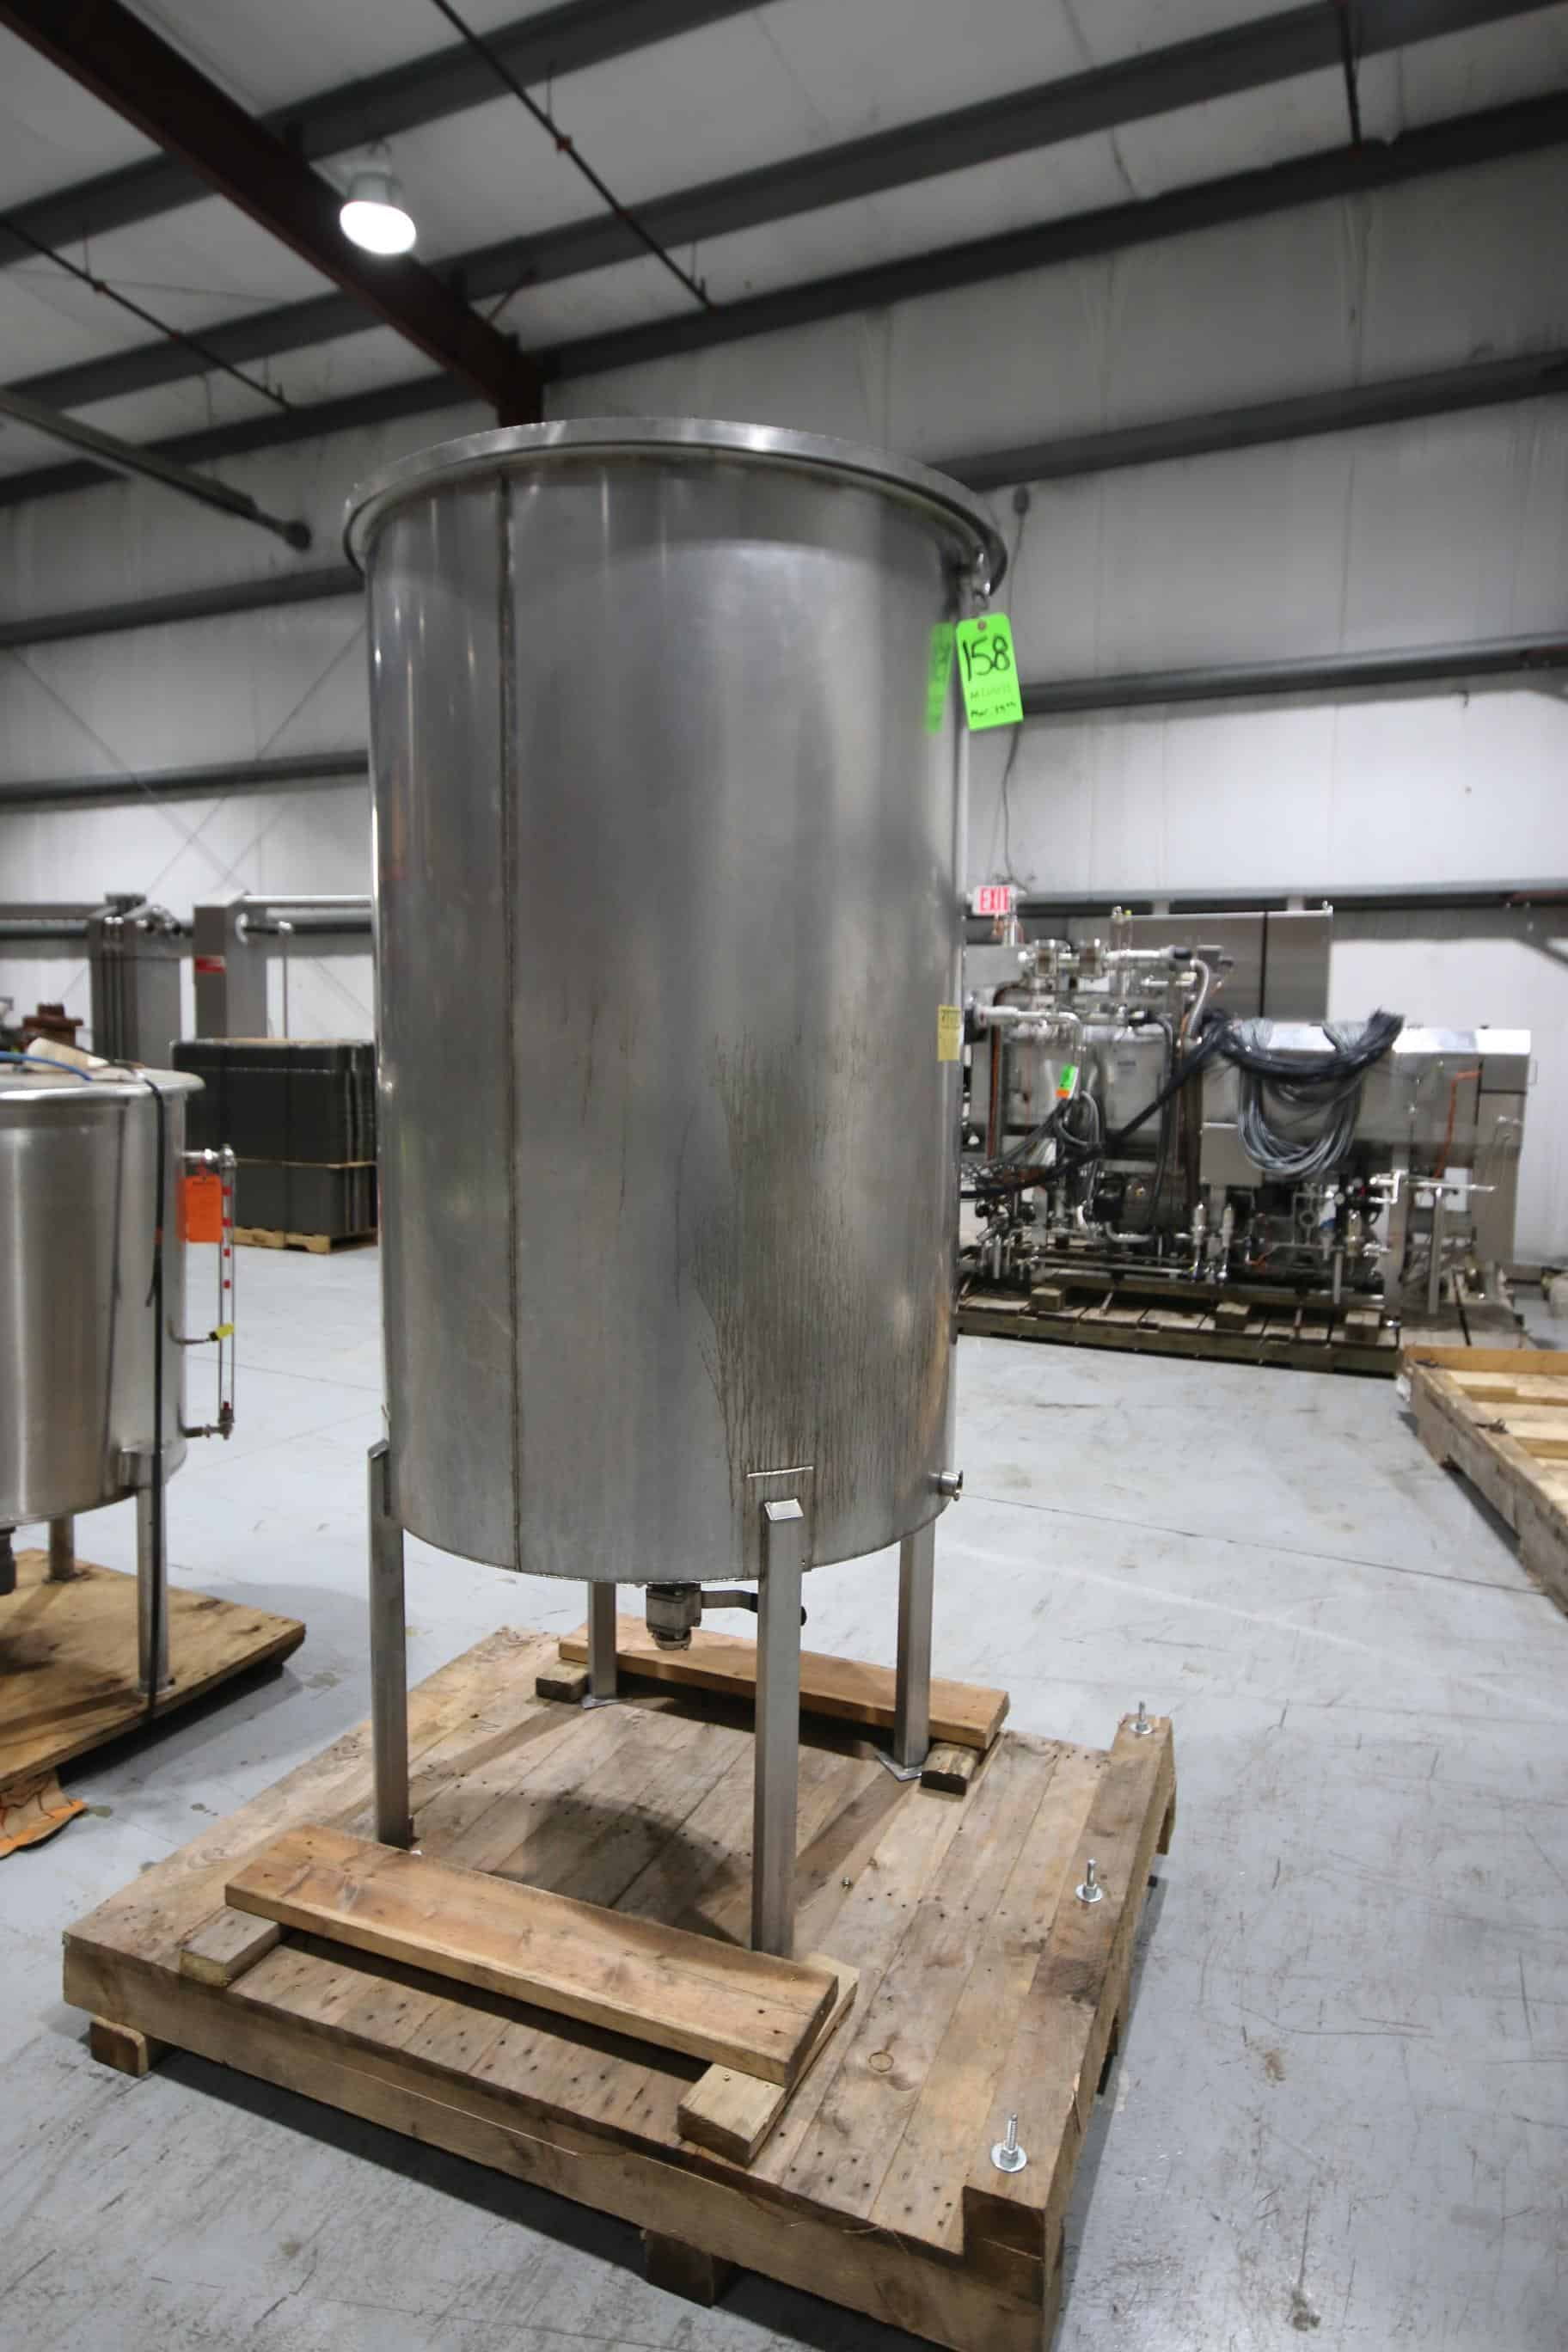 "S/S Aprox. 350 Gal. Single-Wall Vertical Tank, Overall Dims.:  85"" Tall x 37"" W, Mounted on S/S Legs"